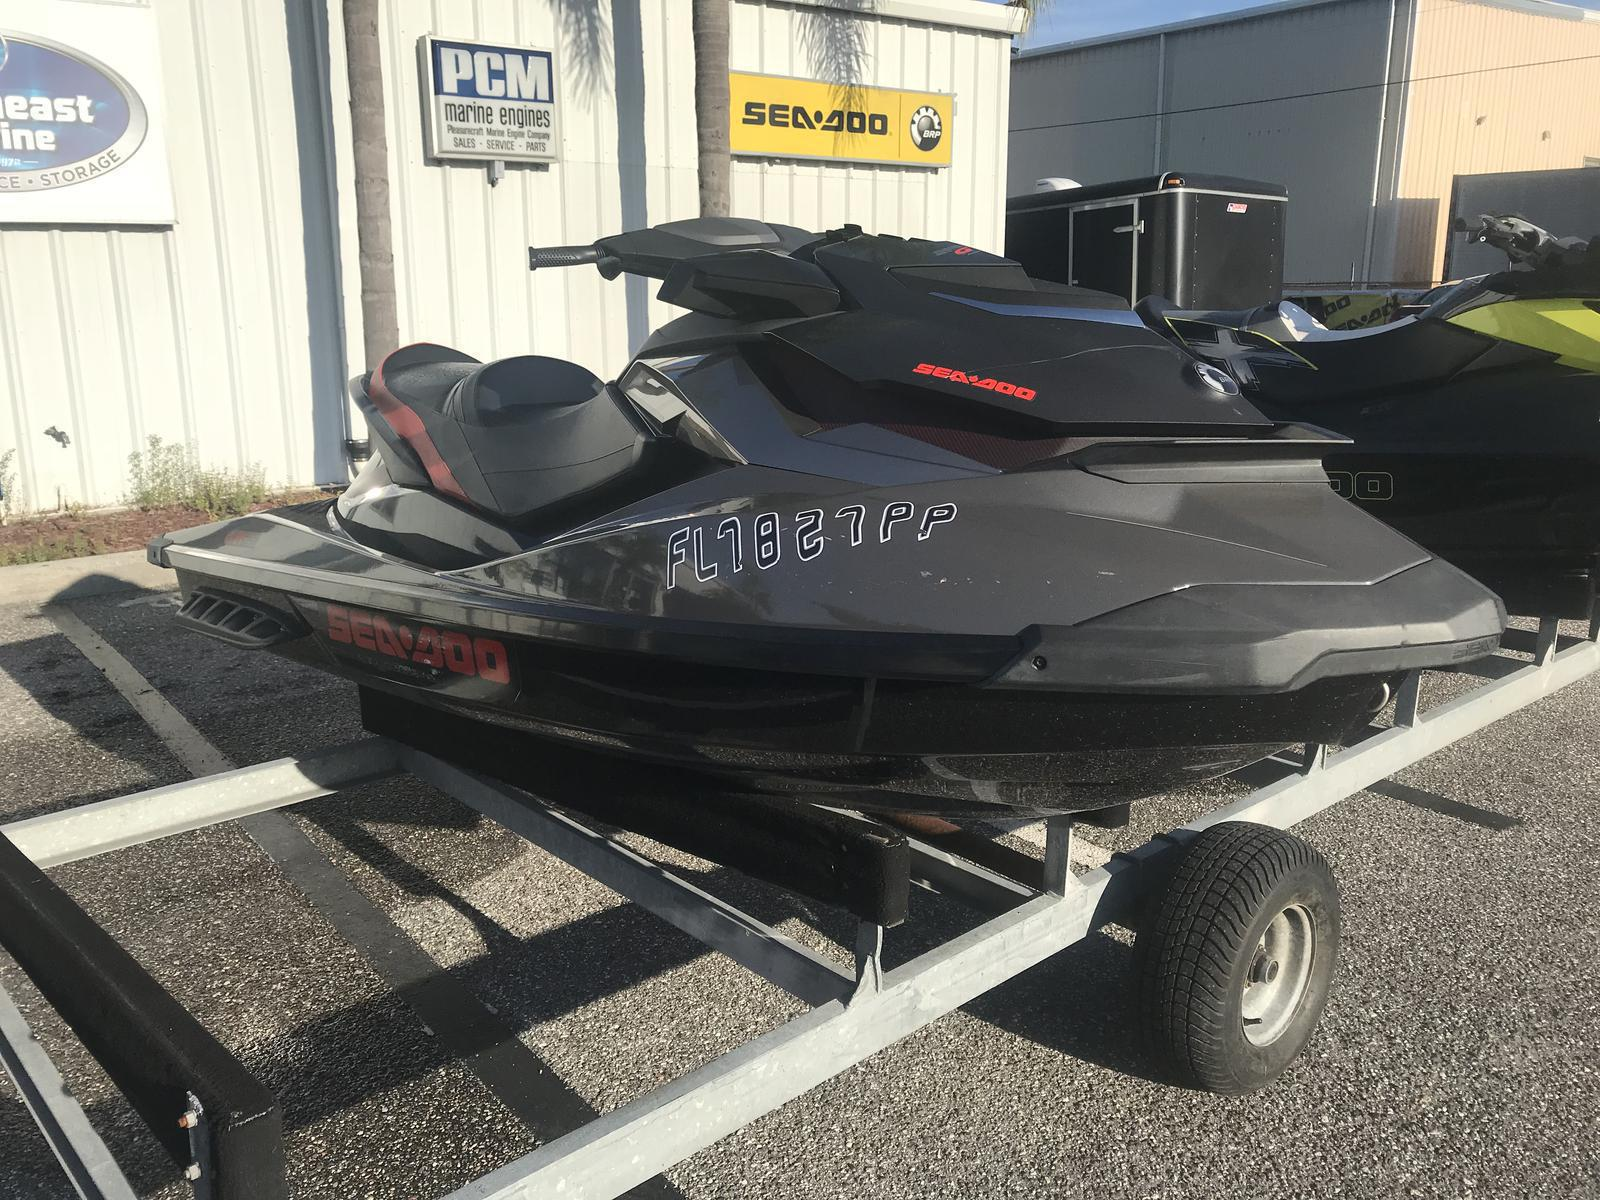 Inventory Southeast Marine Sales and Service Orlando, FL